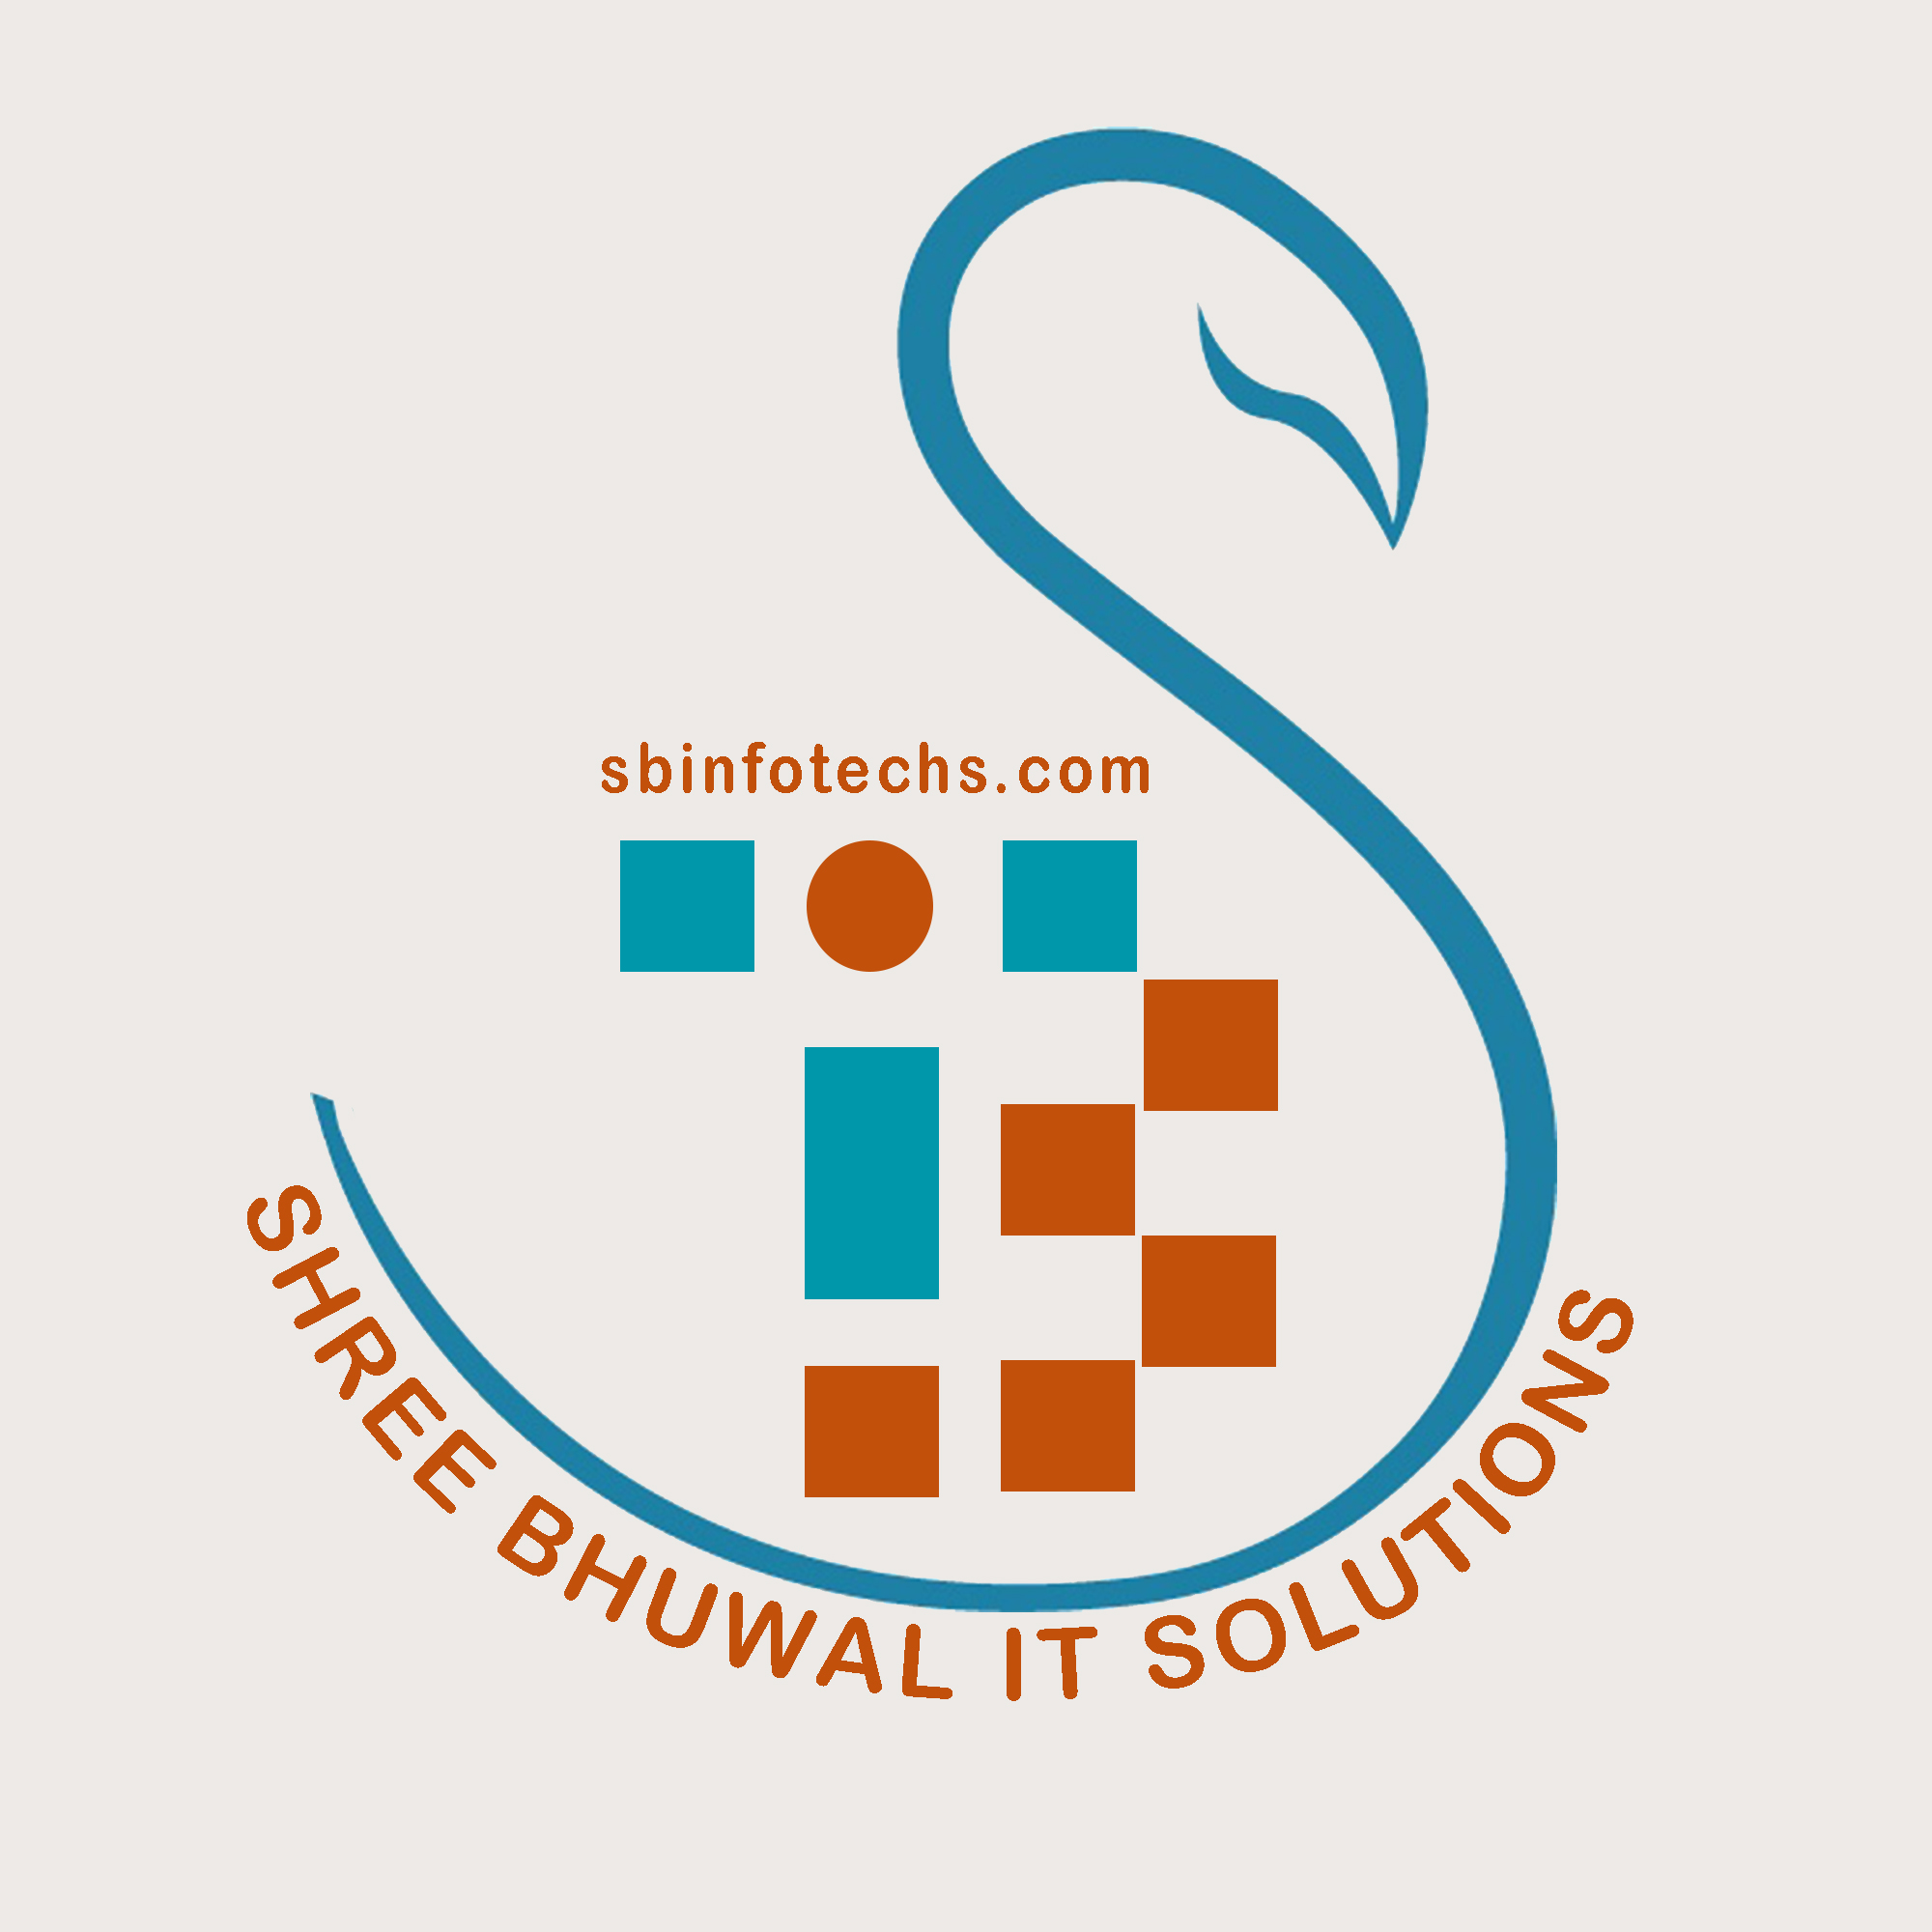 Shree Bhuwal IT Solutions